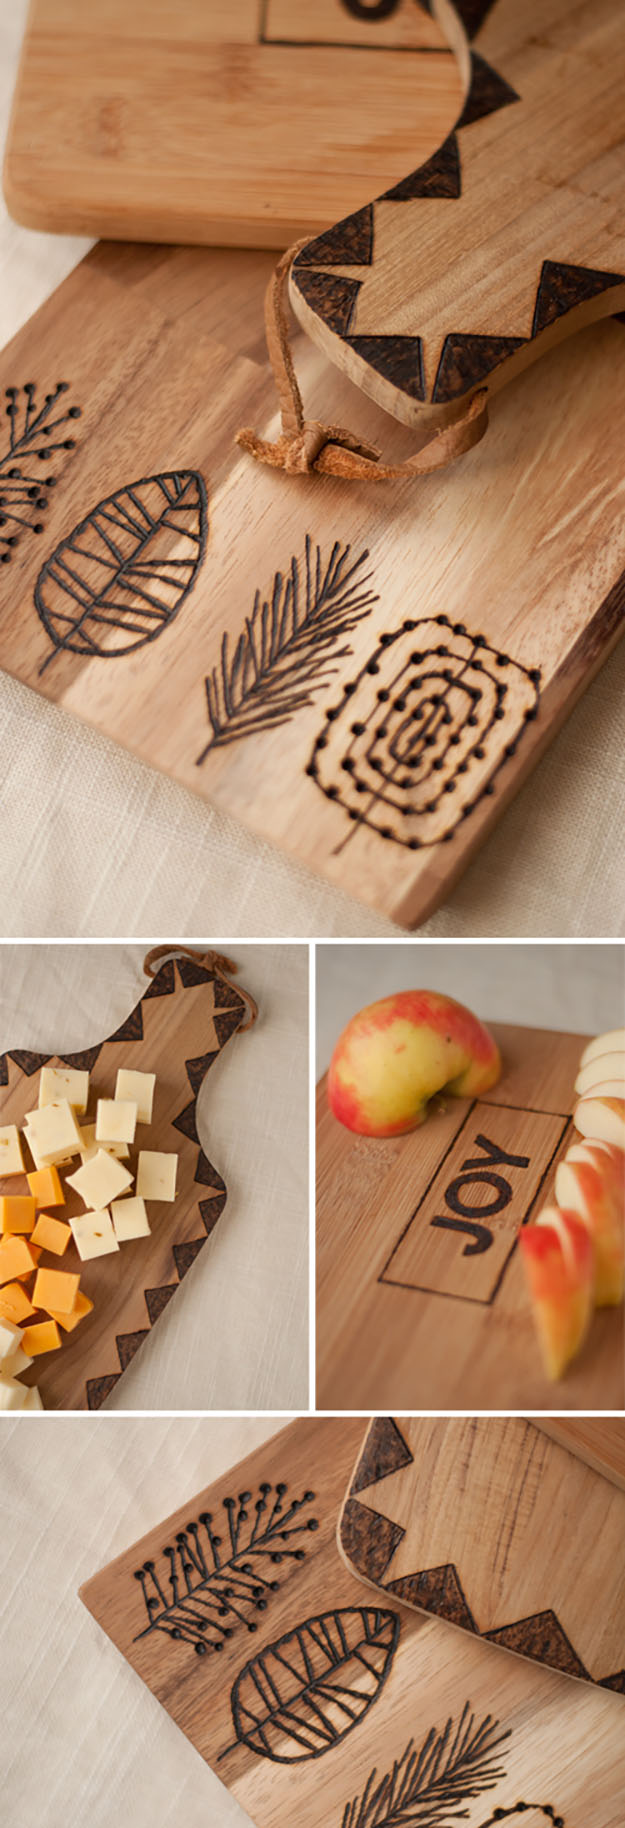 DIY Gifts for Friends & Family | DIY Kitchen Ideas | Etched Wooden Cutting Boards | DIY Projects & Crafts by DIY JOY at http://diyjoy.com/cheap-diy-gifts-ideas